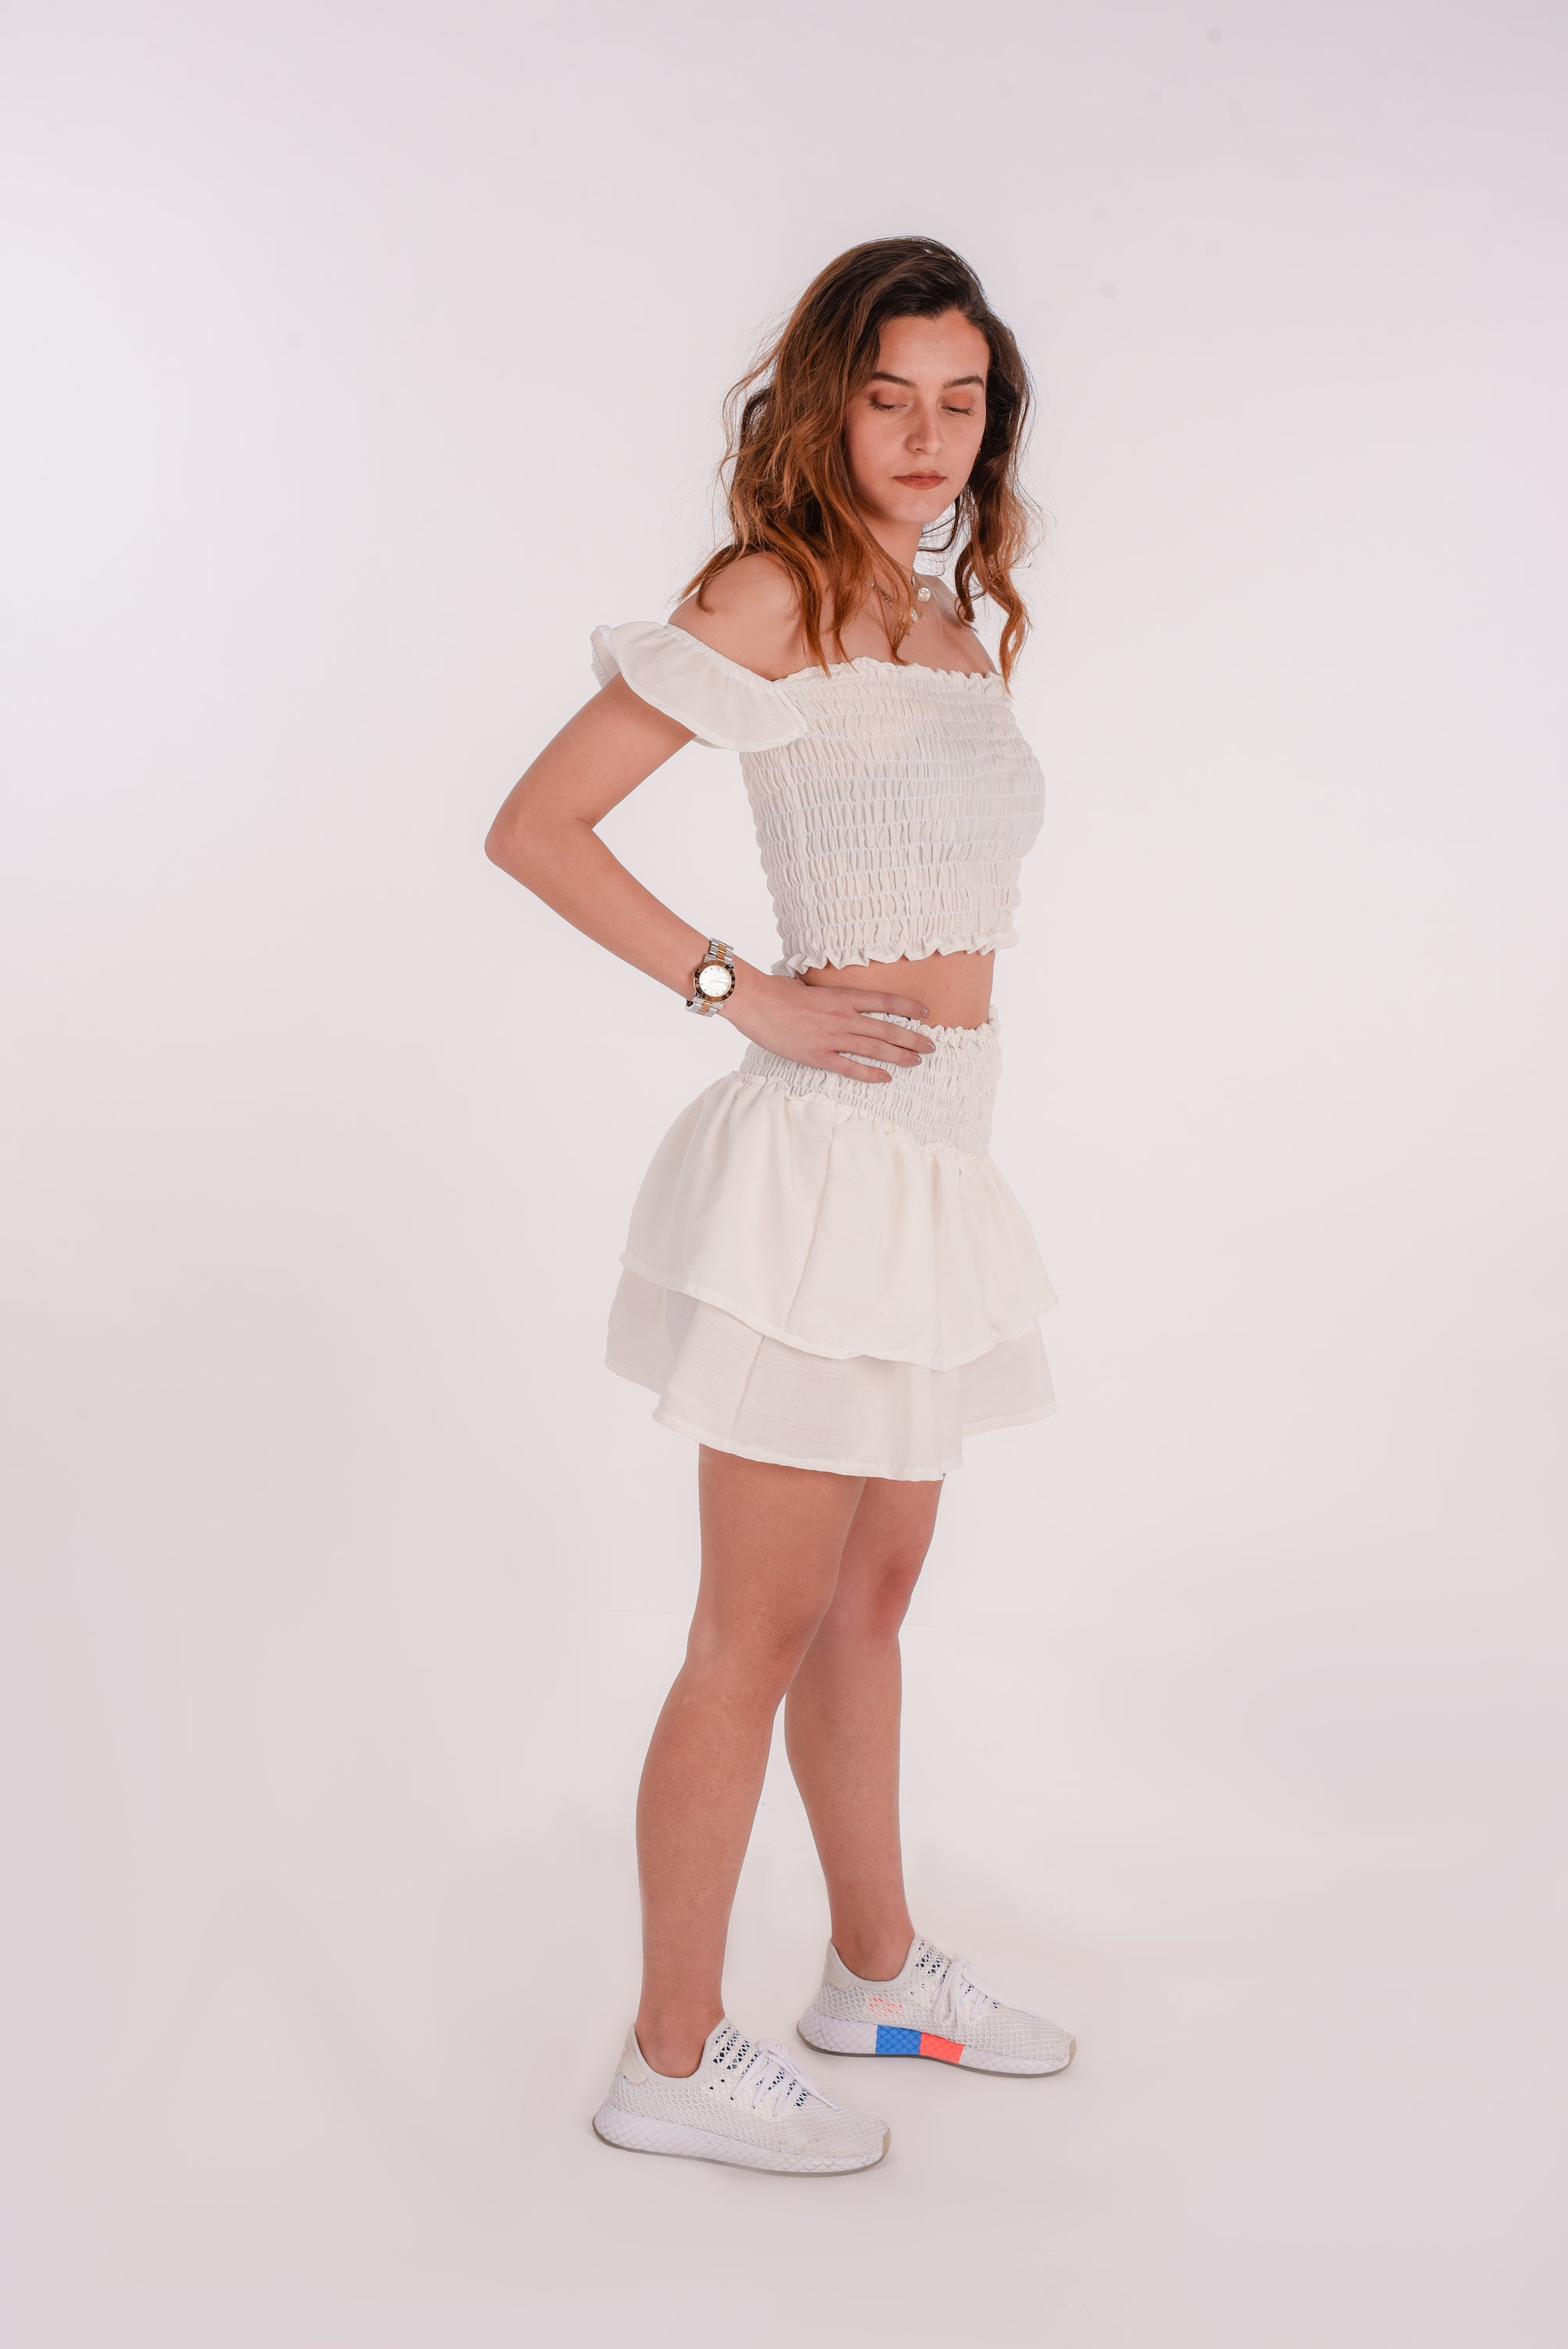 Fire skirt in white